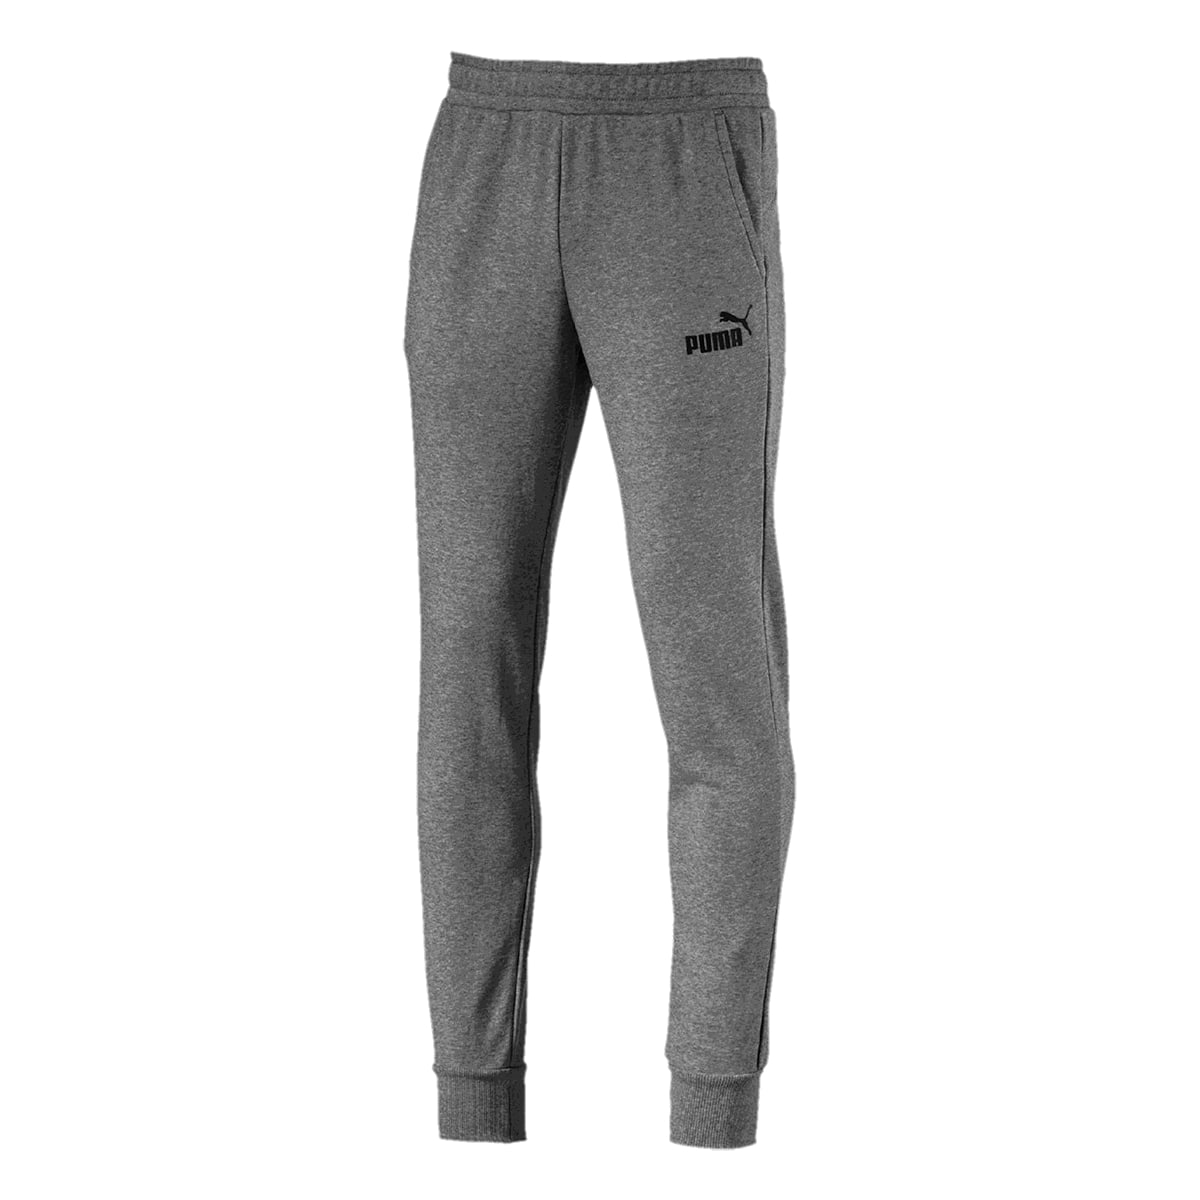 Calça Puma Moletom Elevated ESS Slim Masculino Cinza